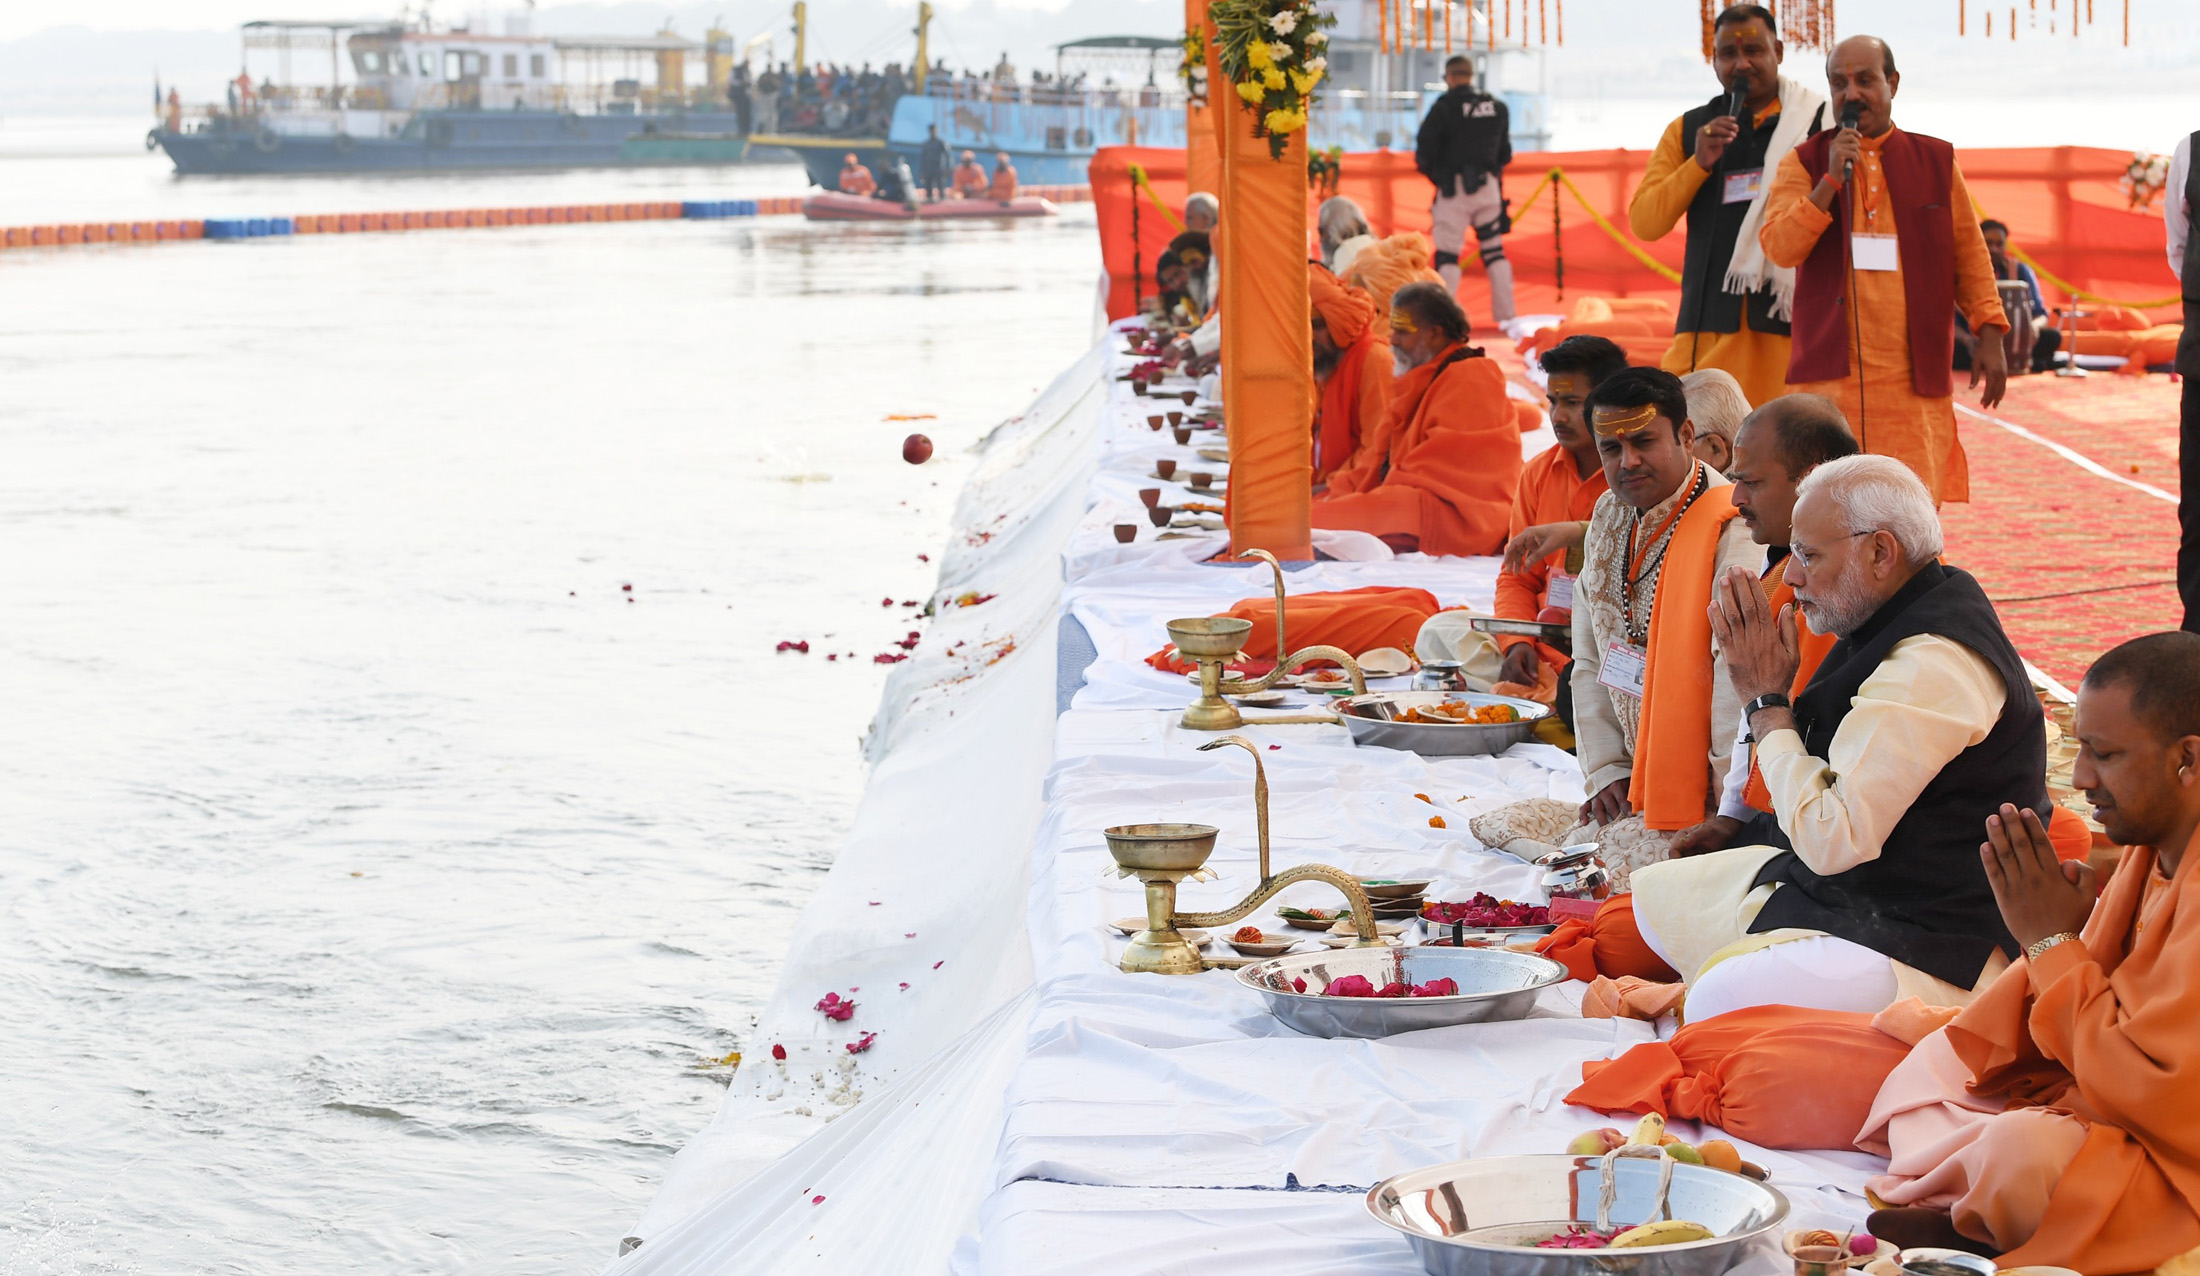 Prime Minister Narendra Modi and Chief Minister of Uttar Pradesh Yogi Adityanath performing the Ganga Pujan at Prayagraj, in Uttar Pradesh. (Photo courtesy: PIB